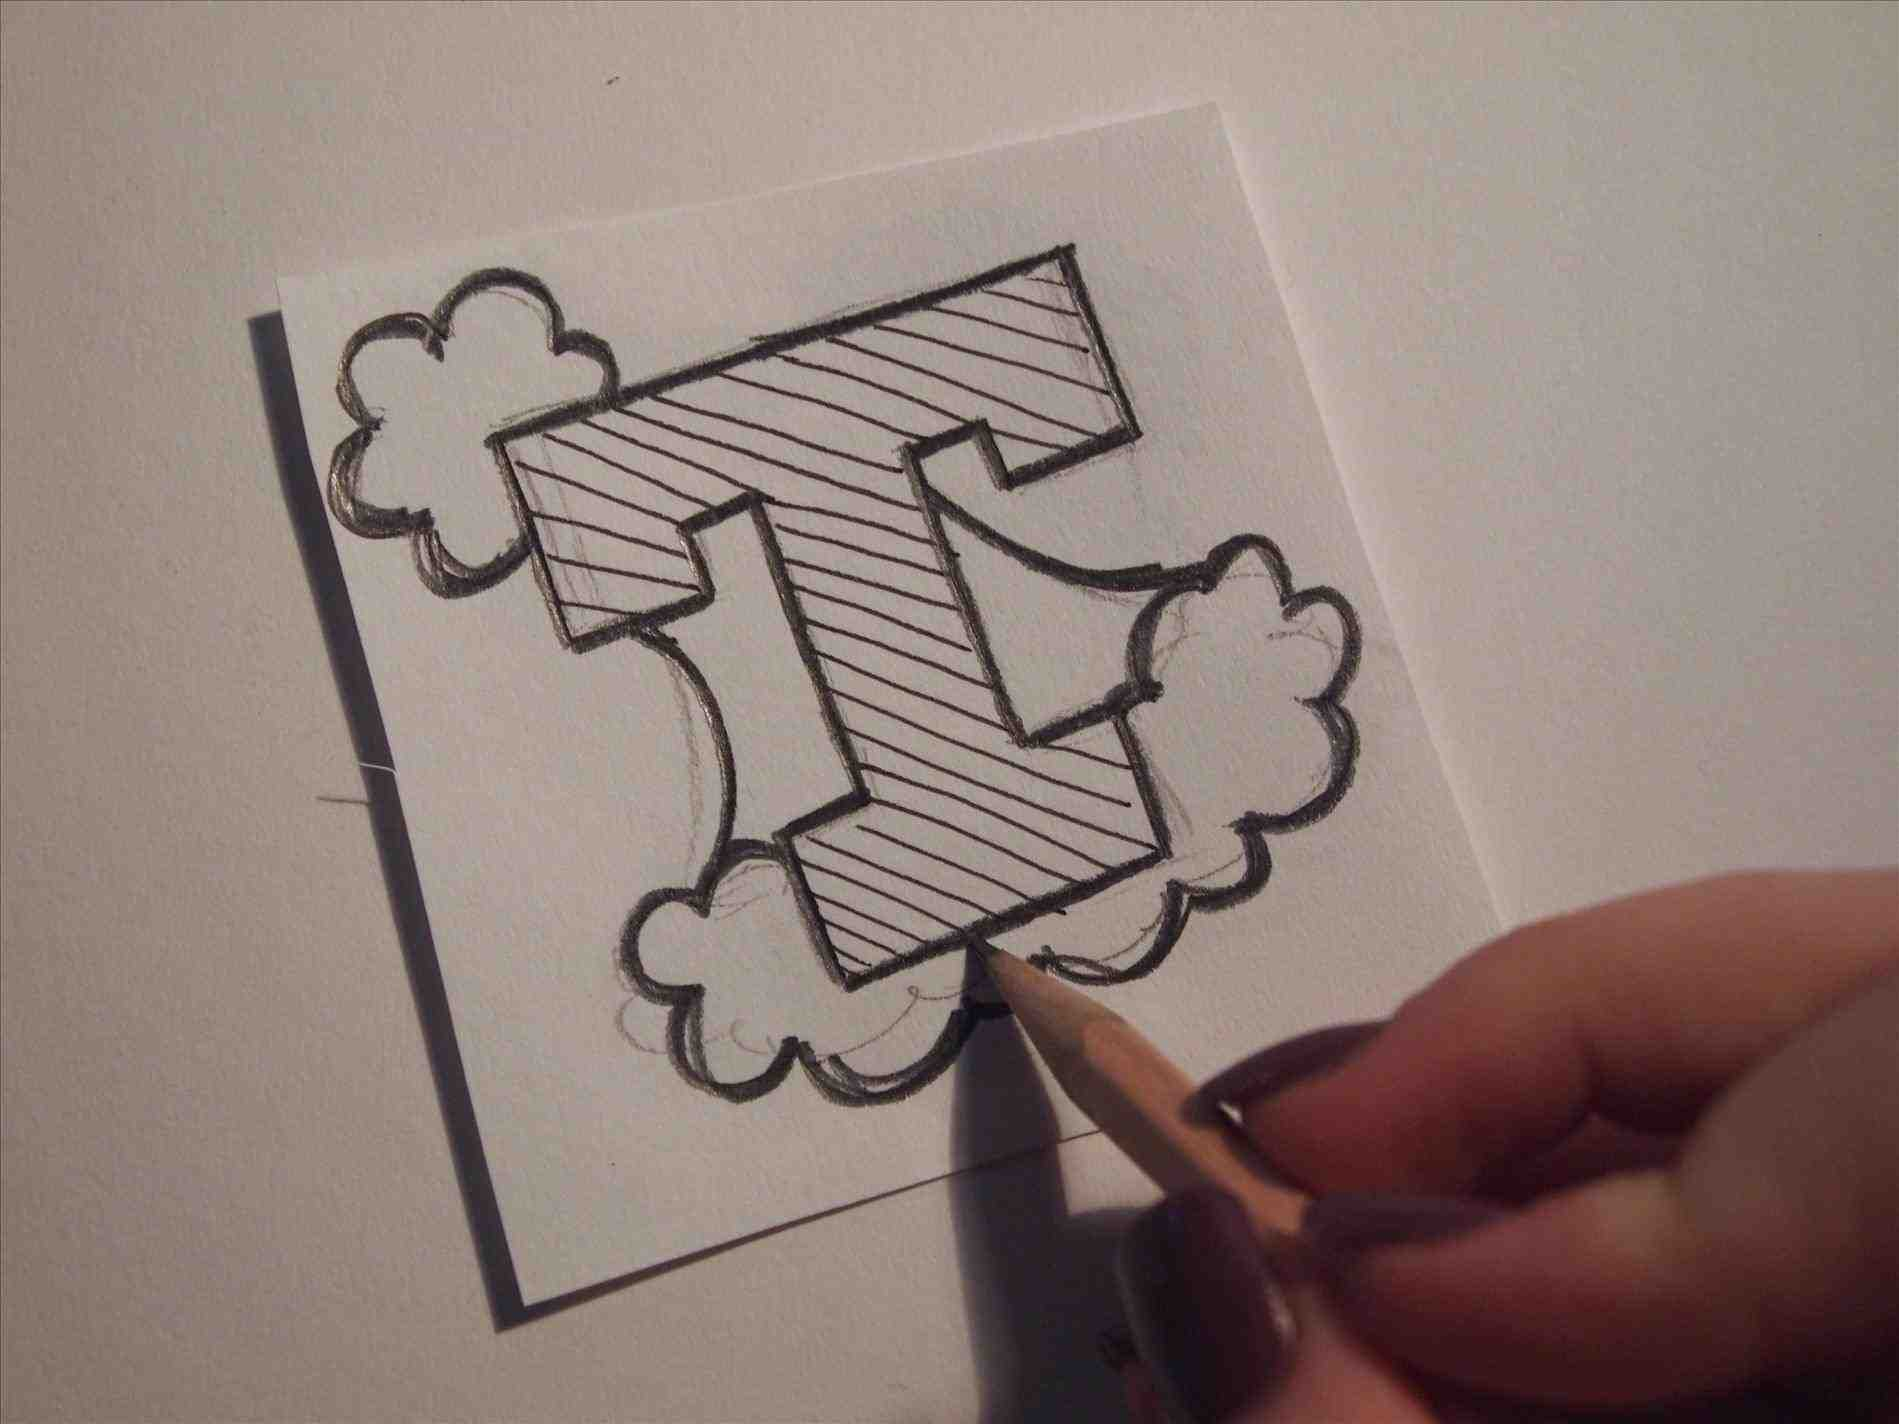 Cool Drawing Designs On Paper at GetDrawings.com | Free ...Easy Cool Designs To Draw On Paper